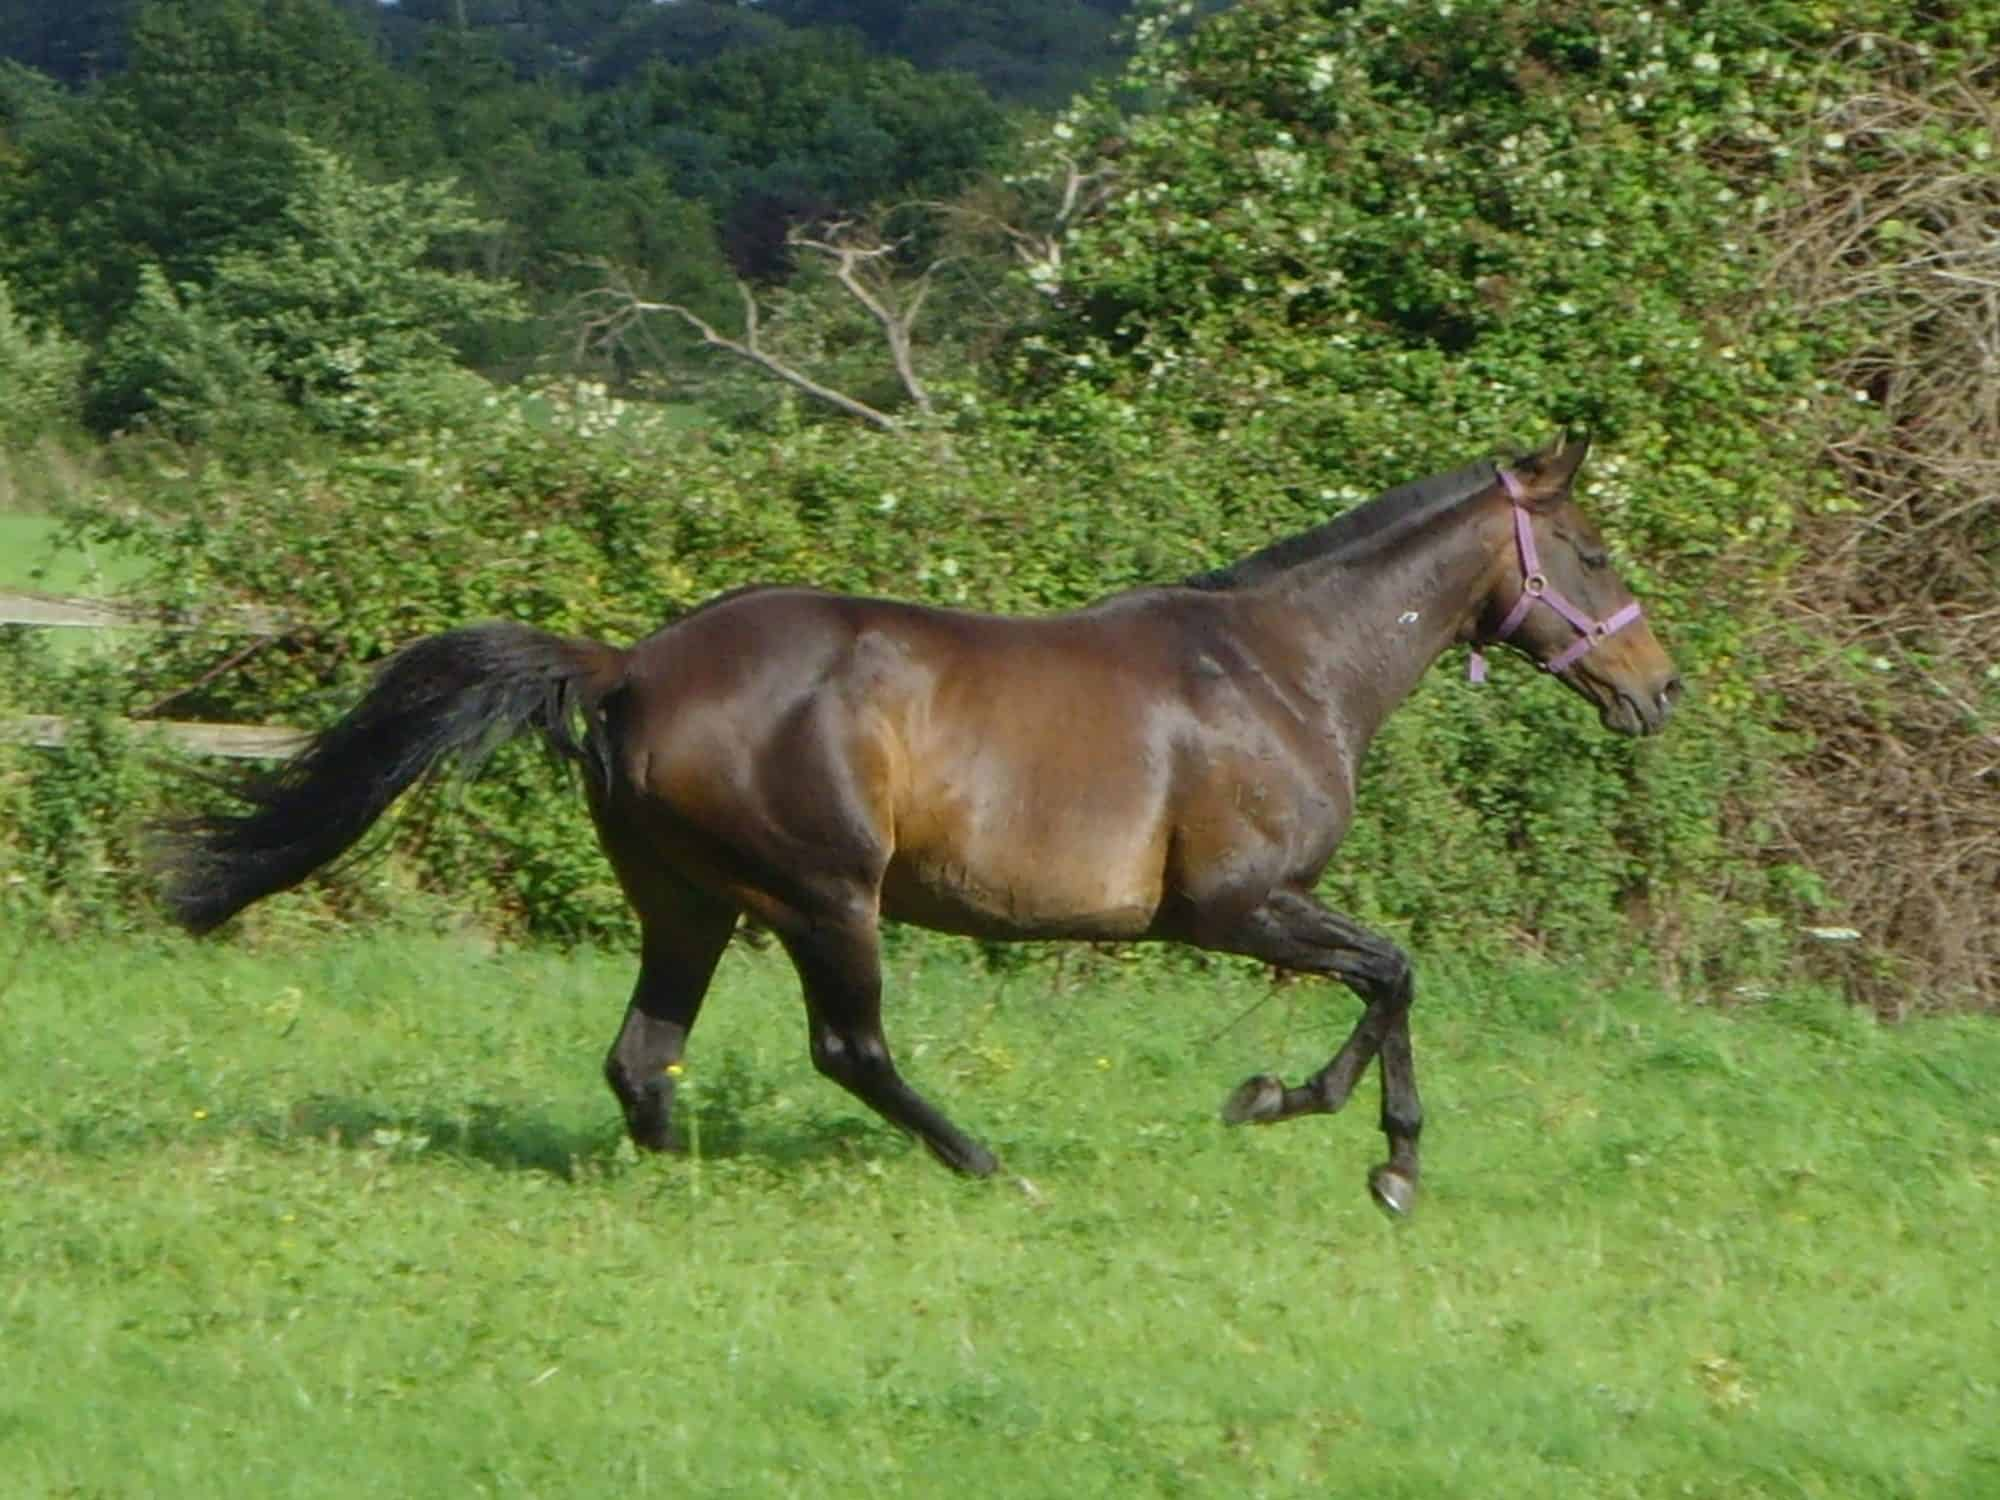 A New Zealand mare